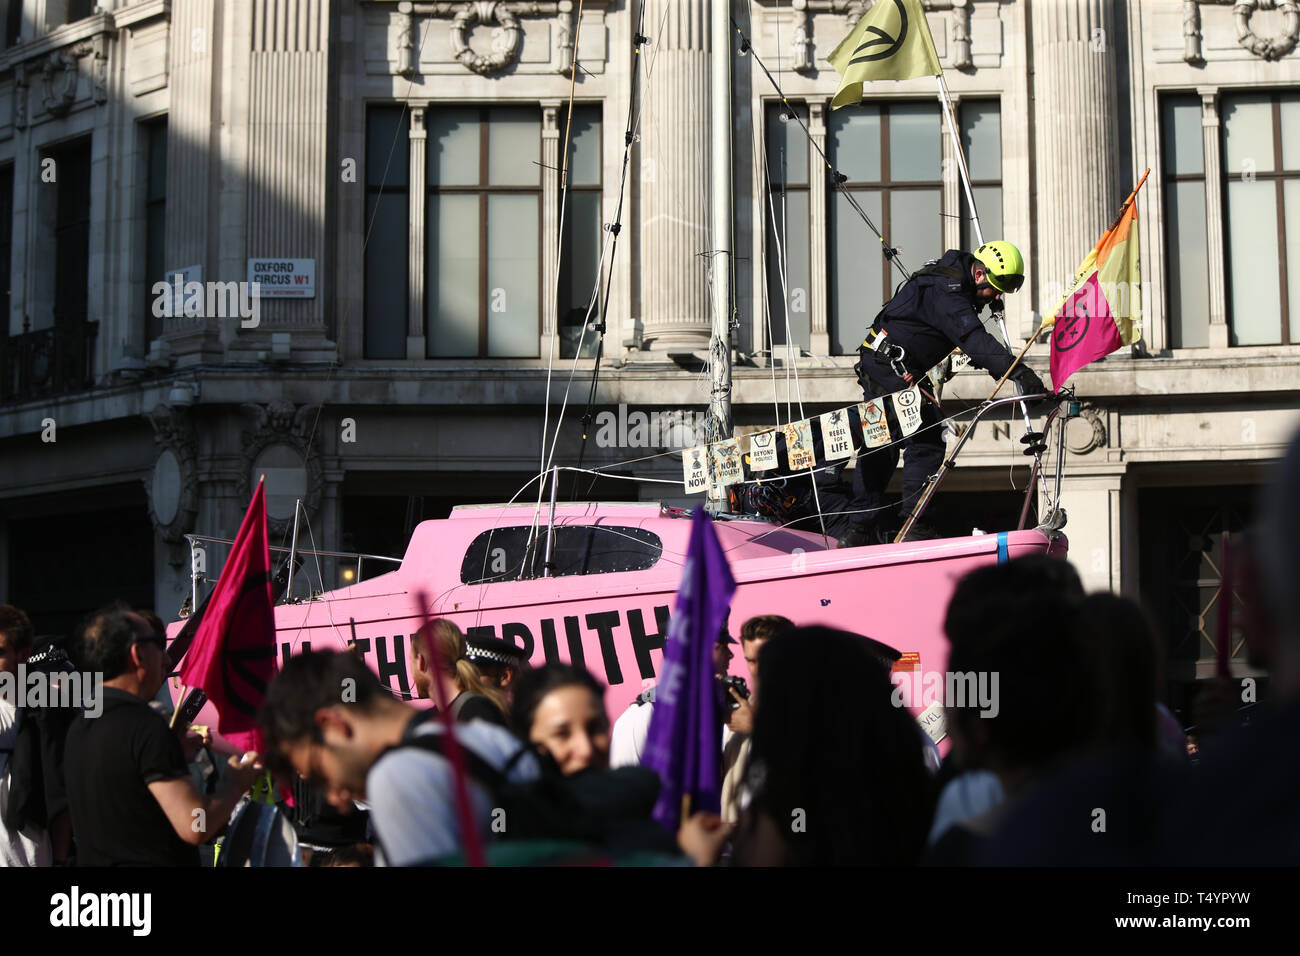 Police take control of Extinction Rebellion's 'Tell the Truth' boat, as protests continue at Oxford Circus in London. Stock Photo